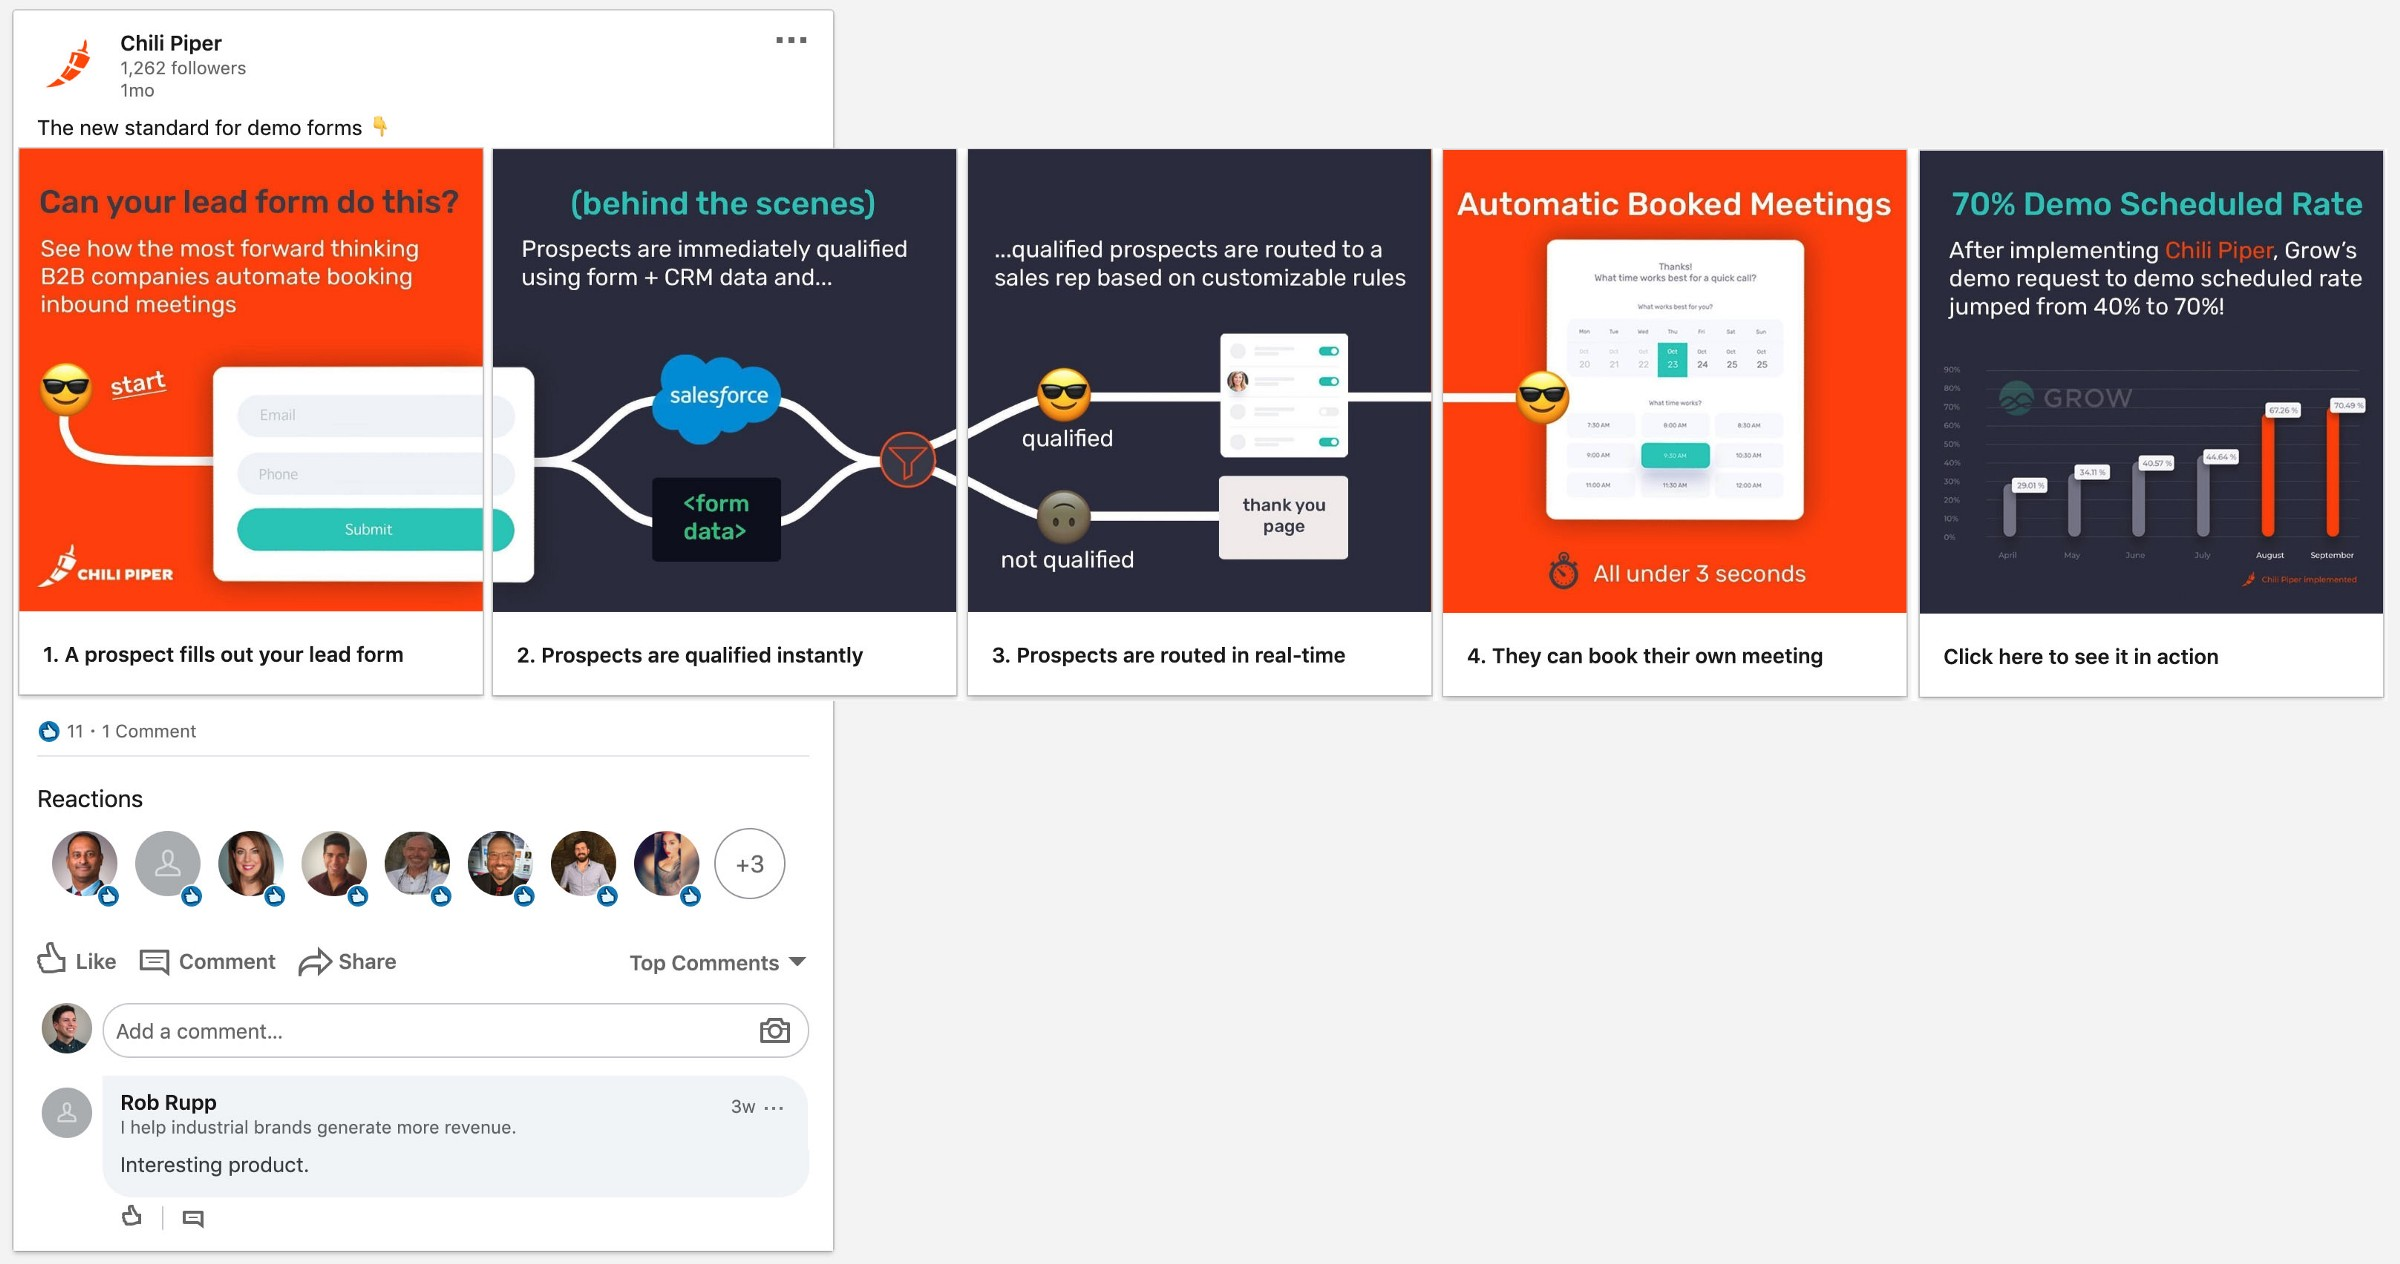 New LinkedIn carousel ad to increase engagement and show how Concierge works.